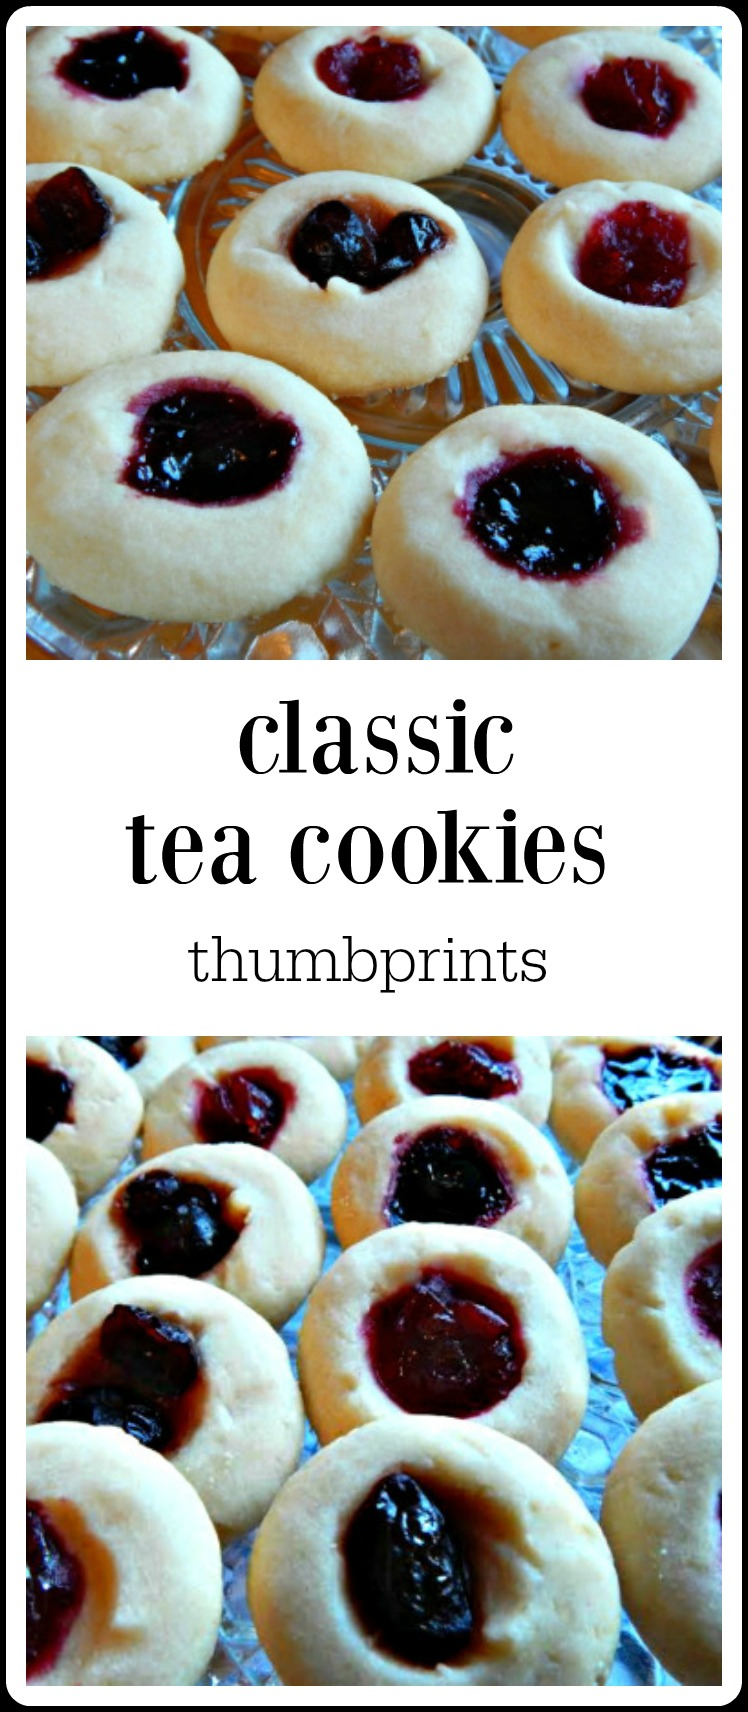 Classic Tea Thumbprint Cookies are such a perfect Holiday cookie! They\'re easy, festive and customizable and take so little skill (or time) to make! #ClassicTeaCookies #ThumbprintCookies #TeaCookiesThumbprint